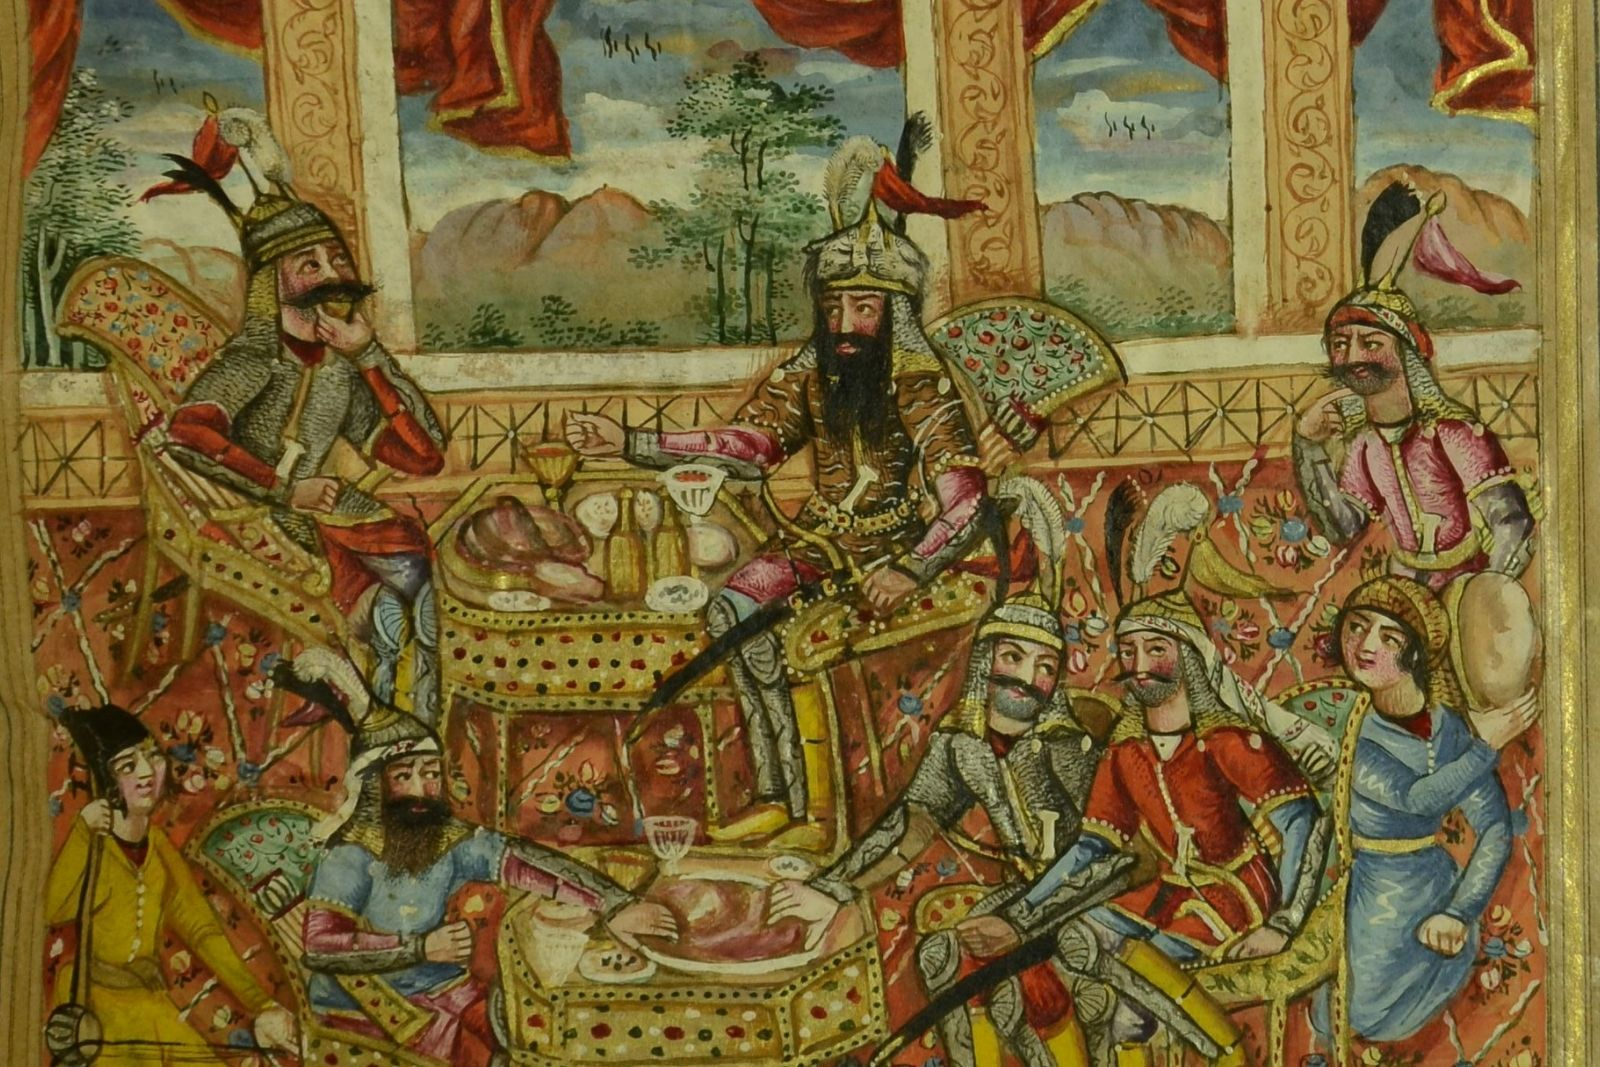 7 things you might like to know about the Shahnameh